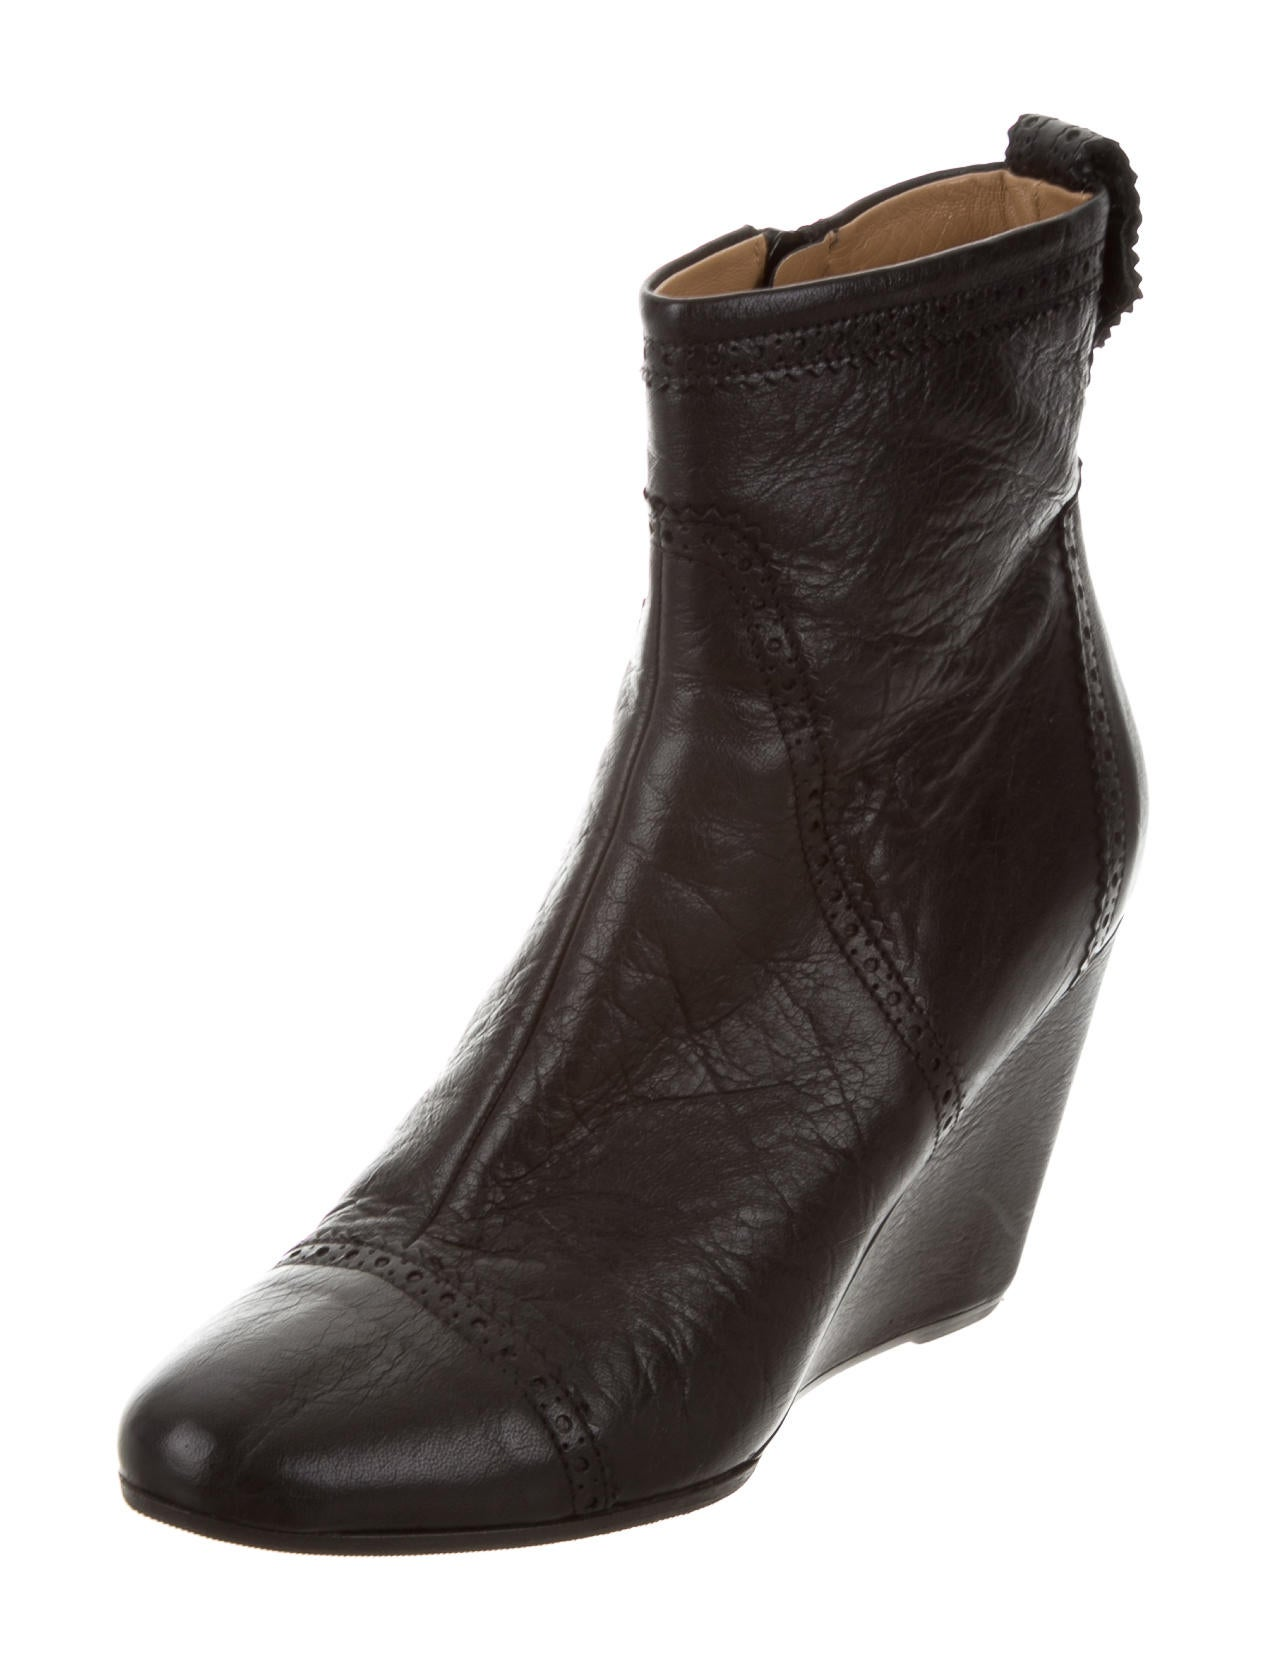 balenciaga leather wedge ankle boots shoes bal52508